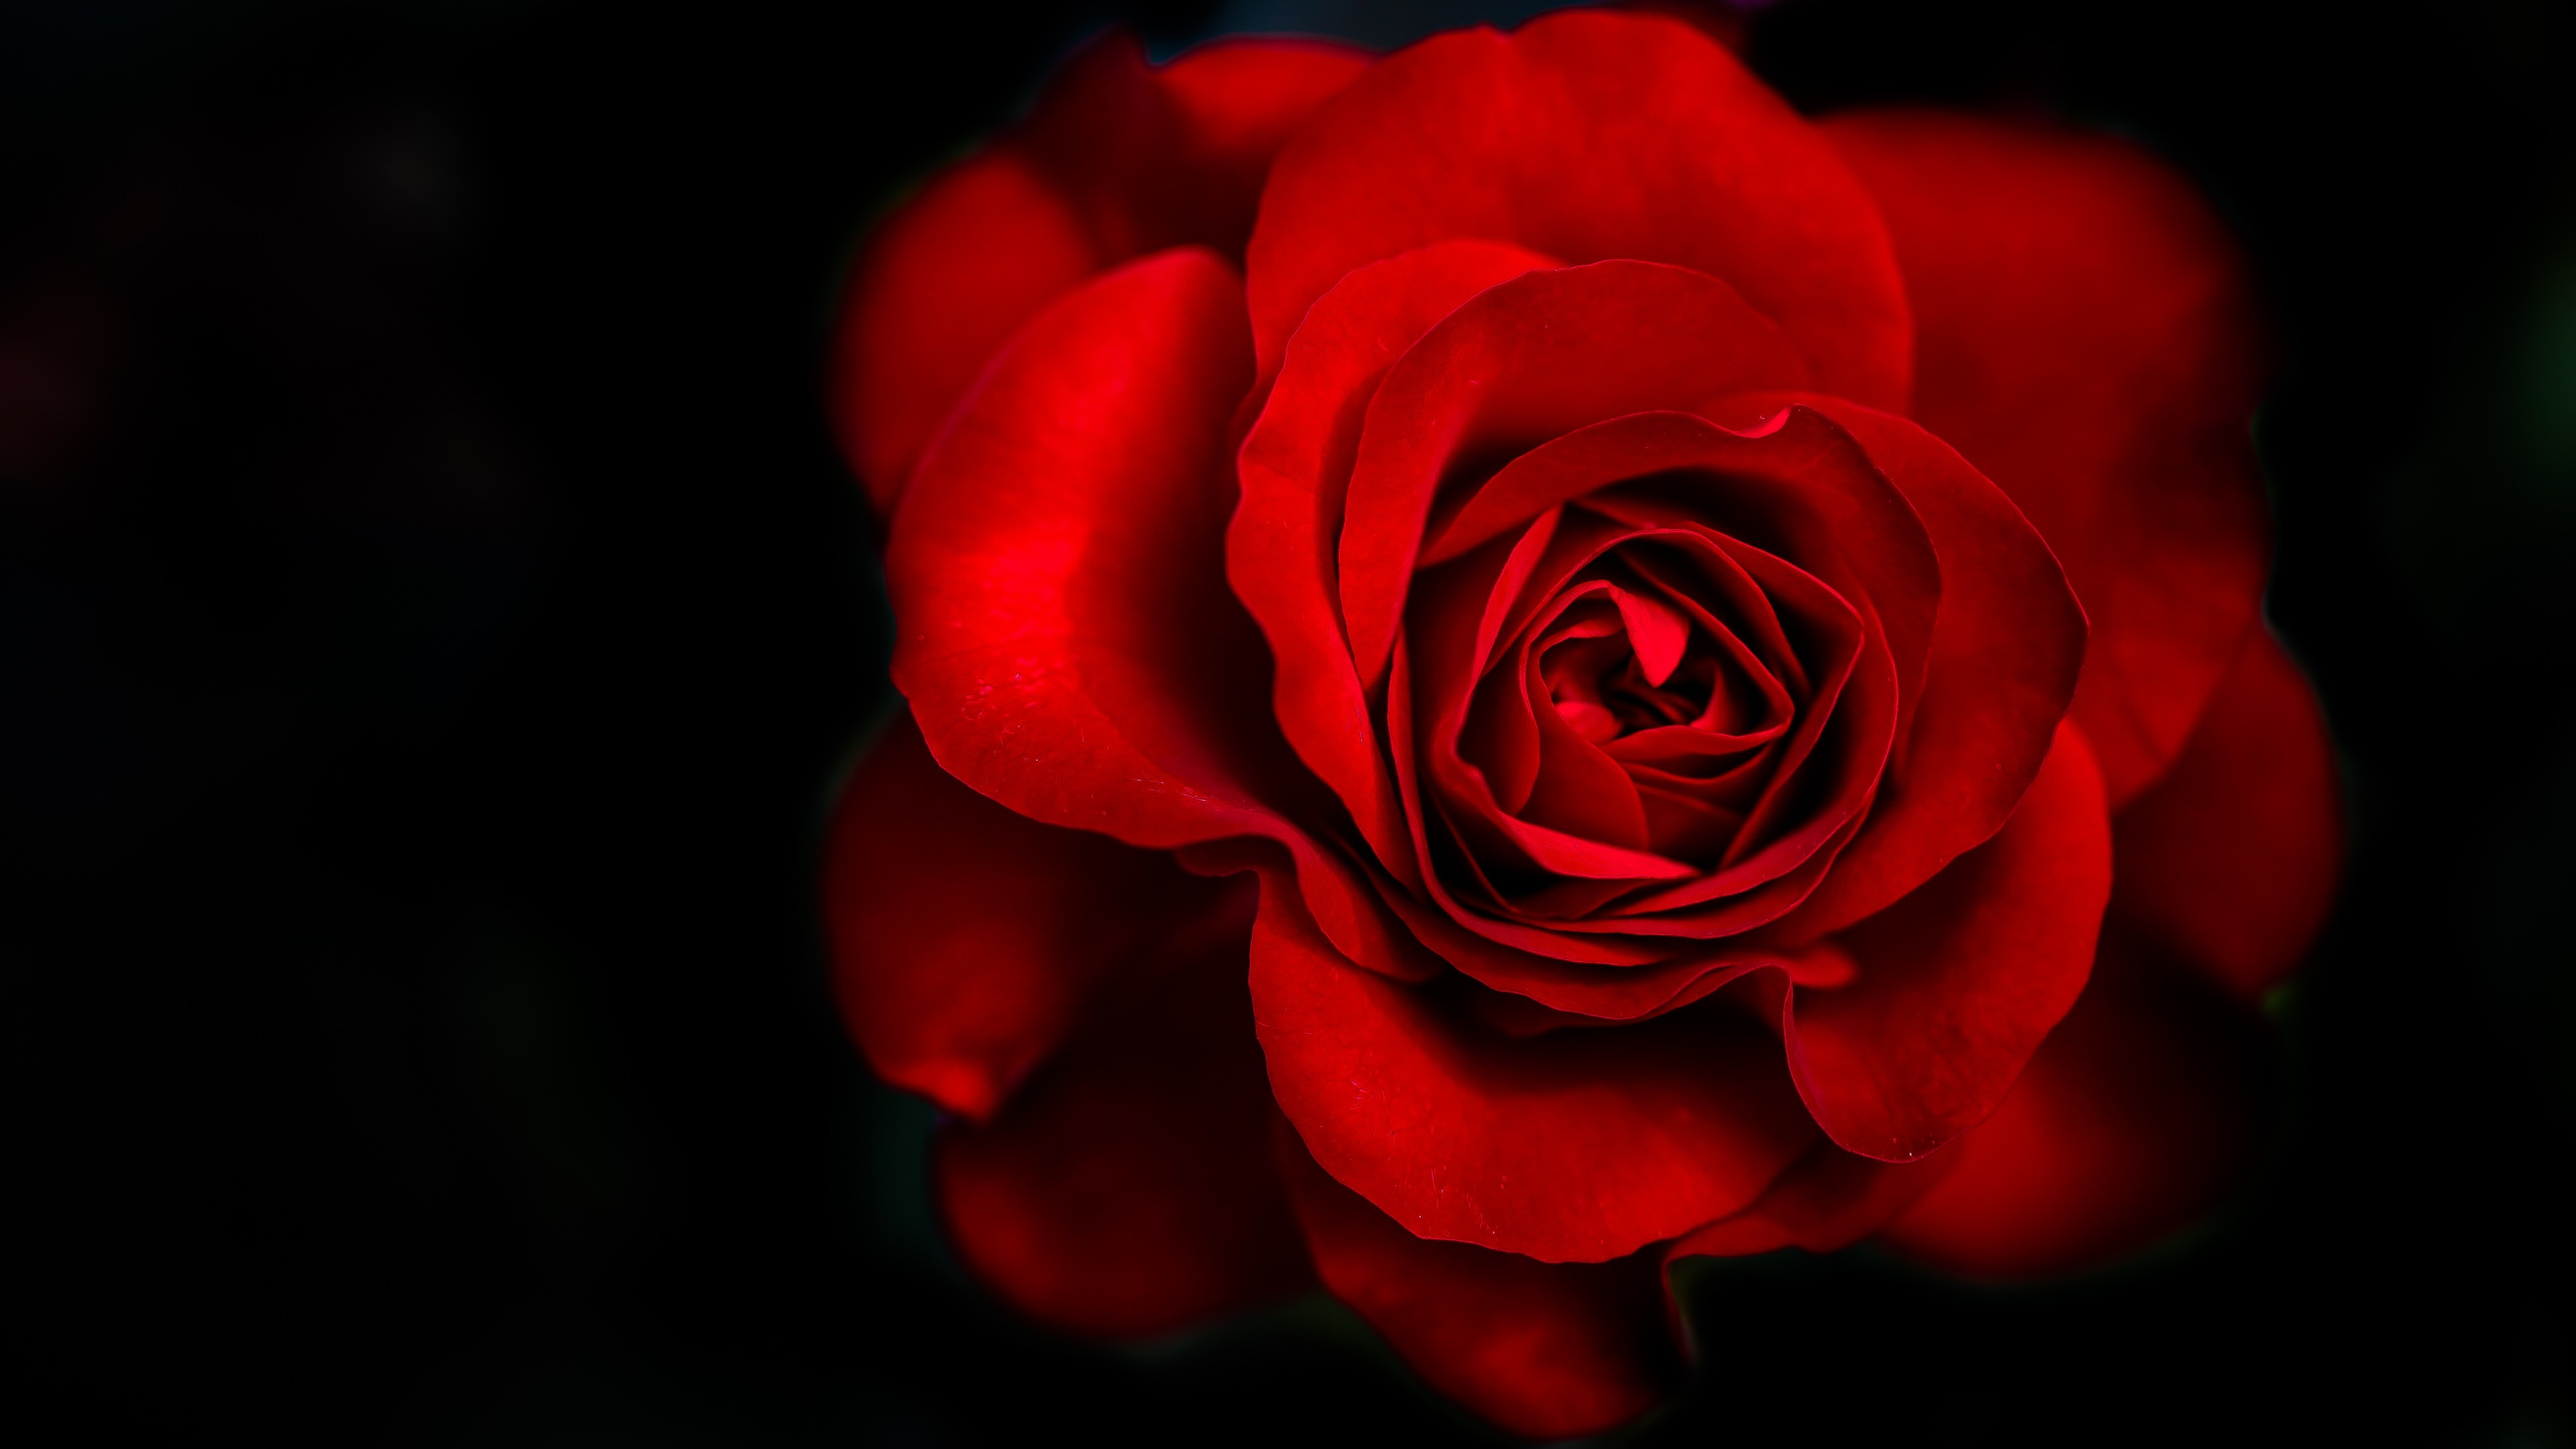 red rose wallpaper desktop